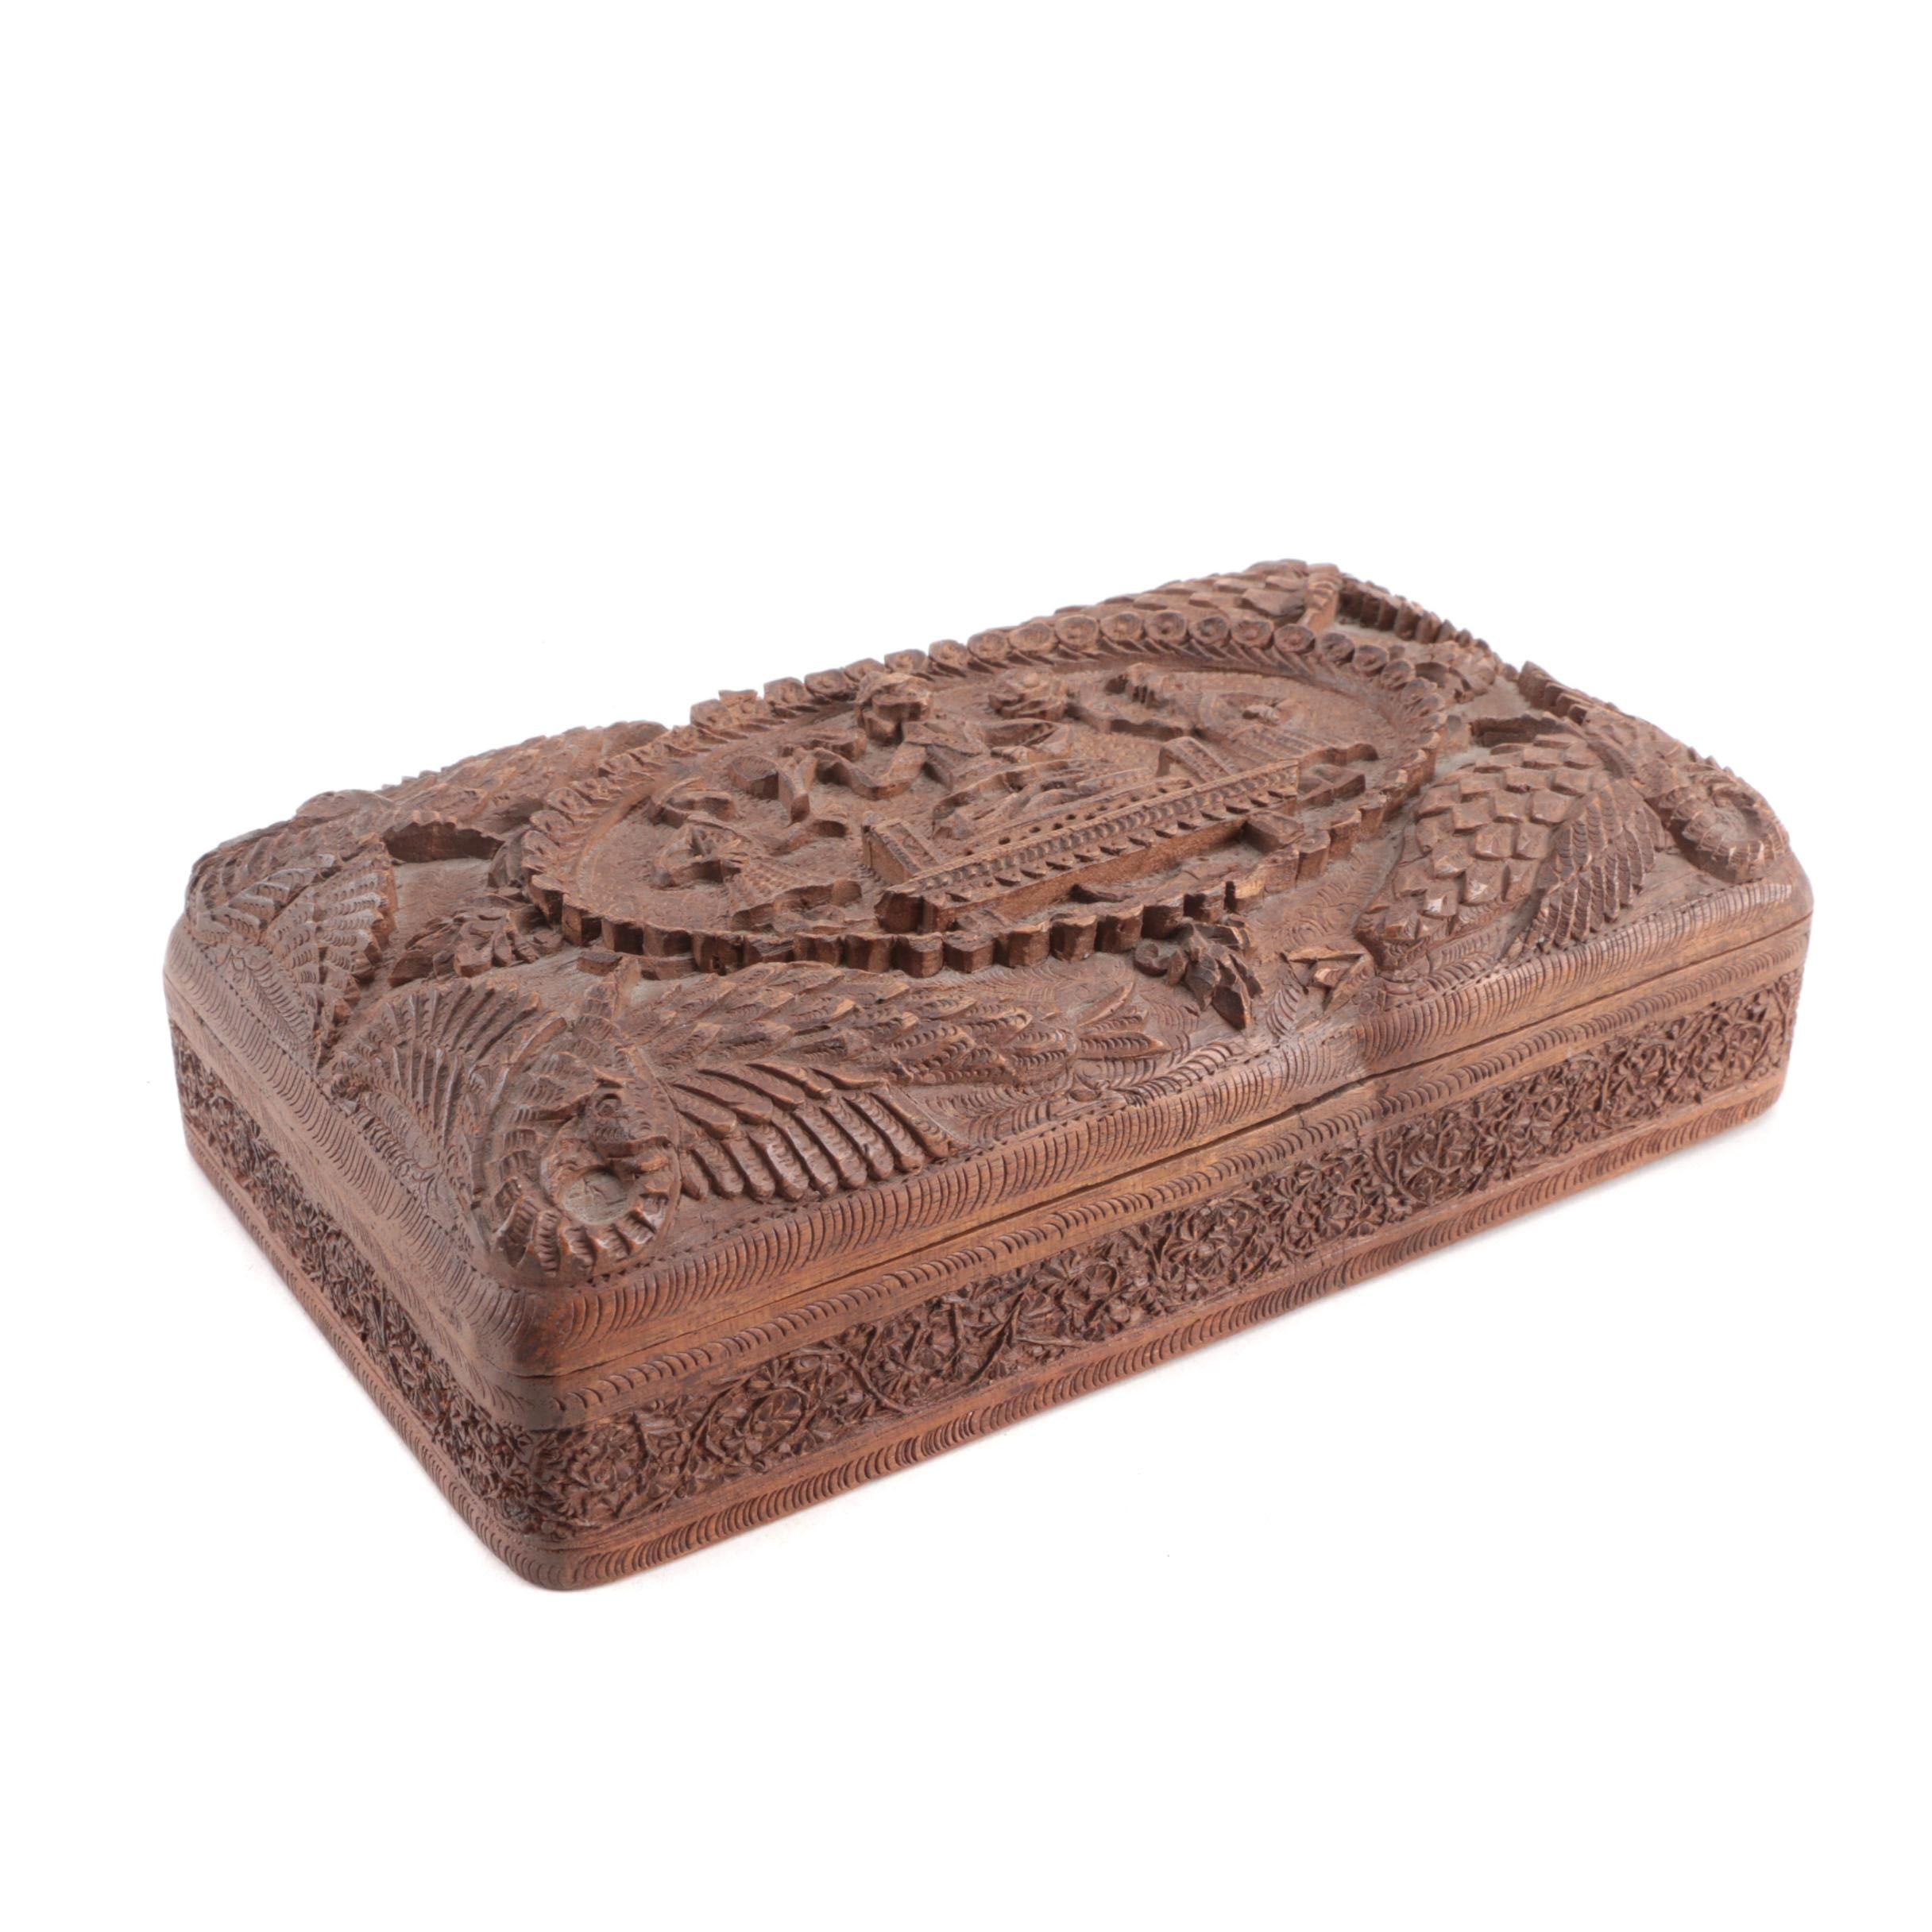 Carved Wooden Decorative Box